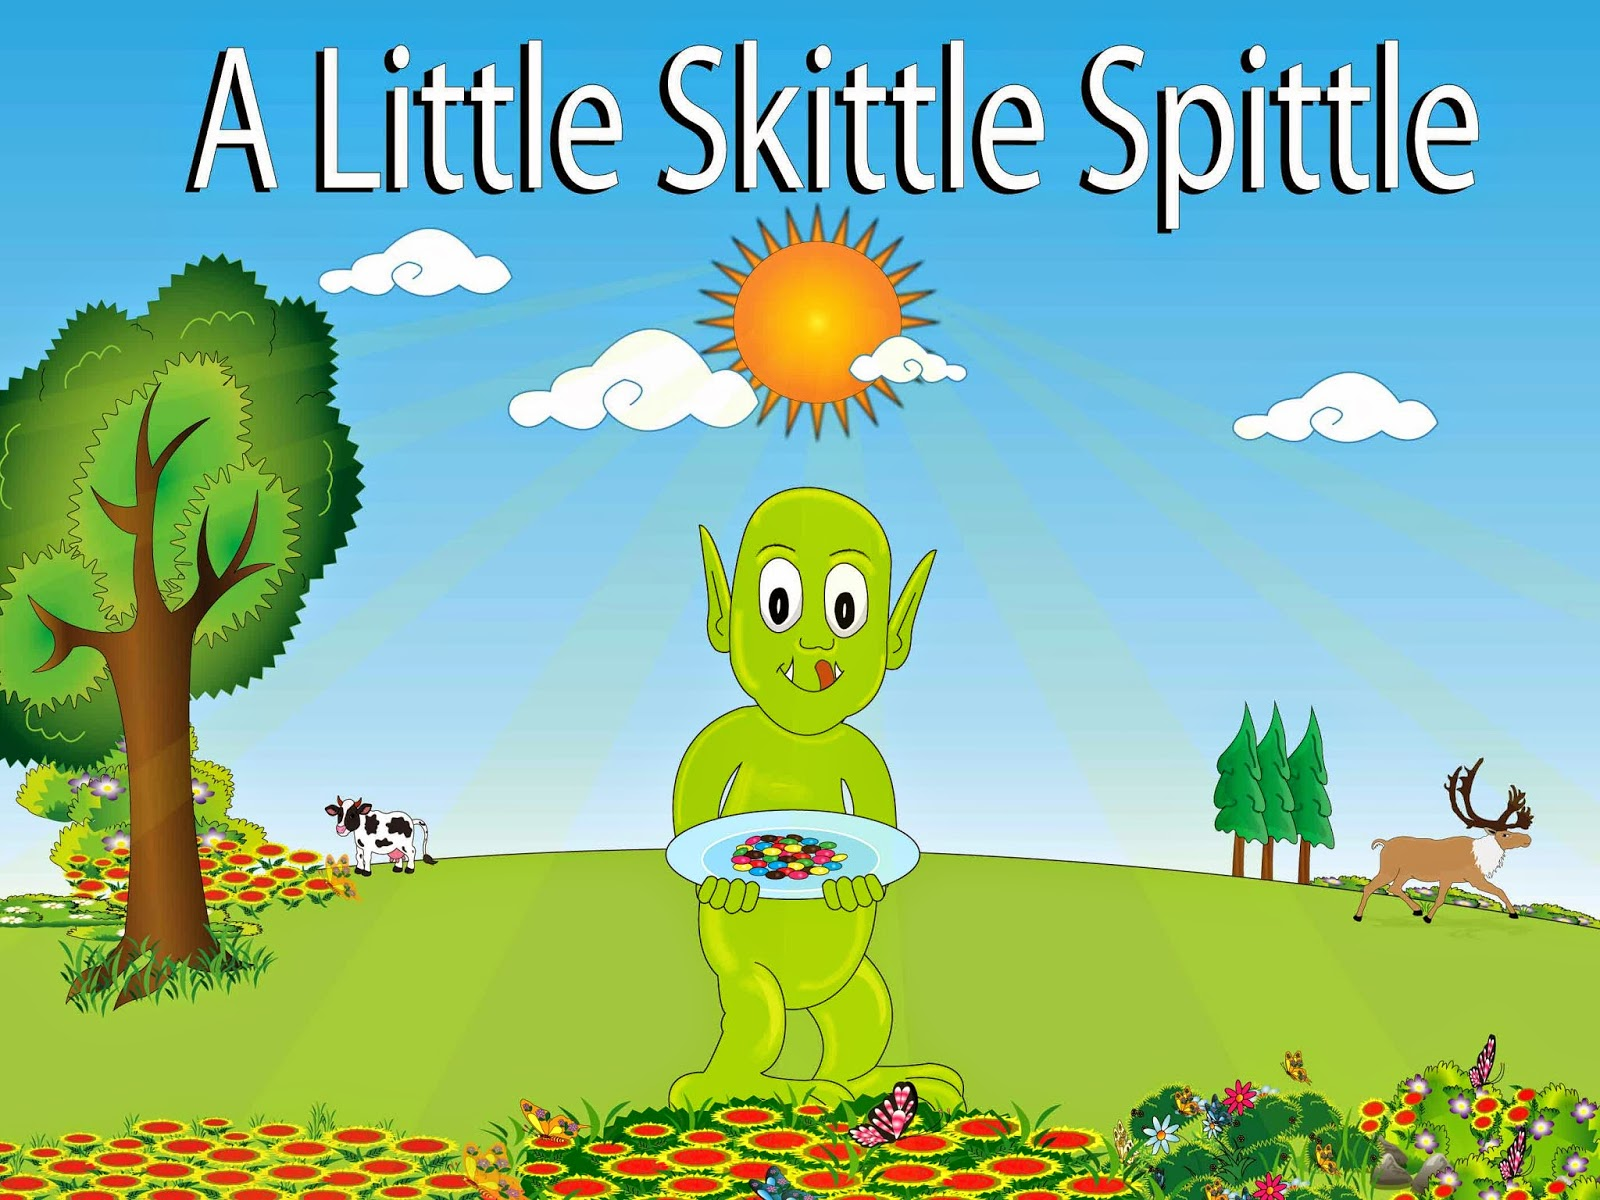 http://www.amazon.com/Little-Skittle-Spittle-Pat-Hatt-ebook/dp/B00KYVGD9W/ref=sr_1_10?ie=UTF8&qid=1402754717&sr=8-10&keywords=pat+hatt